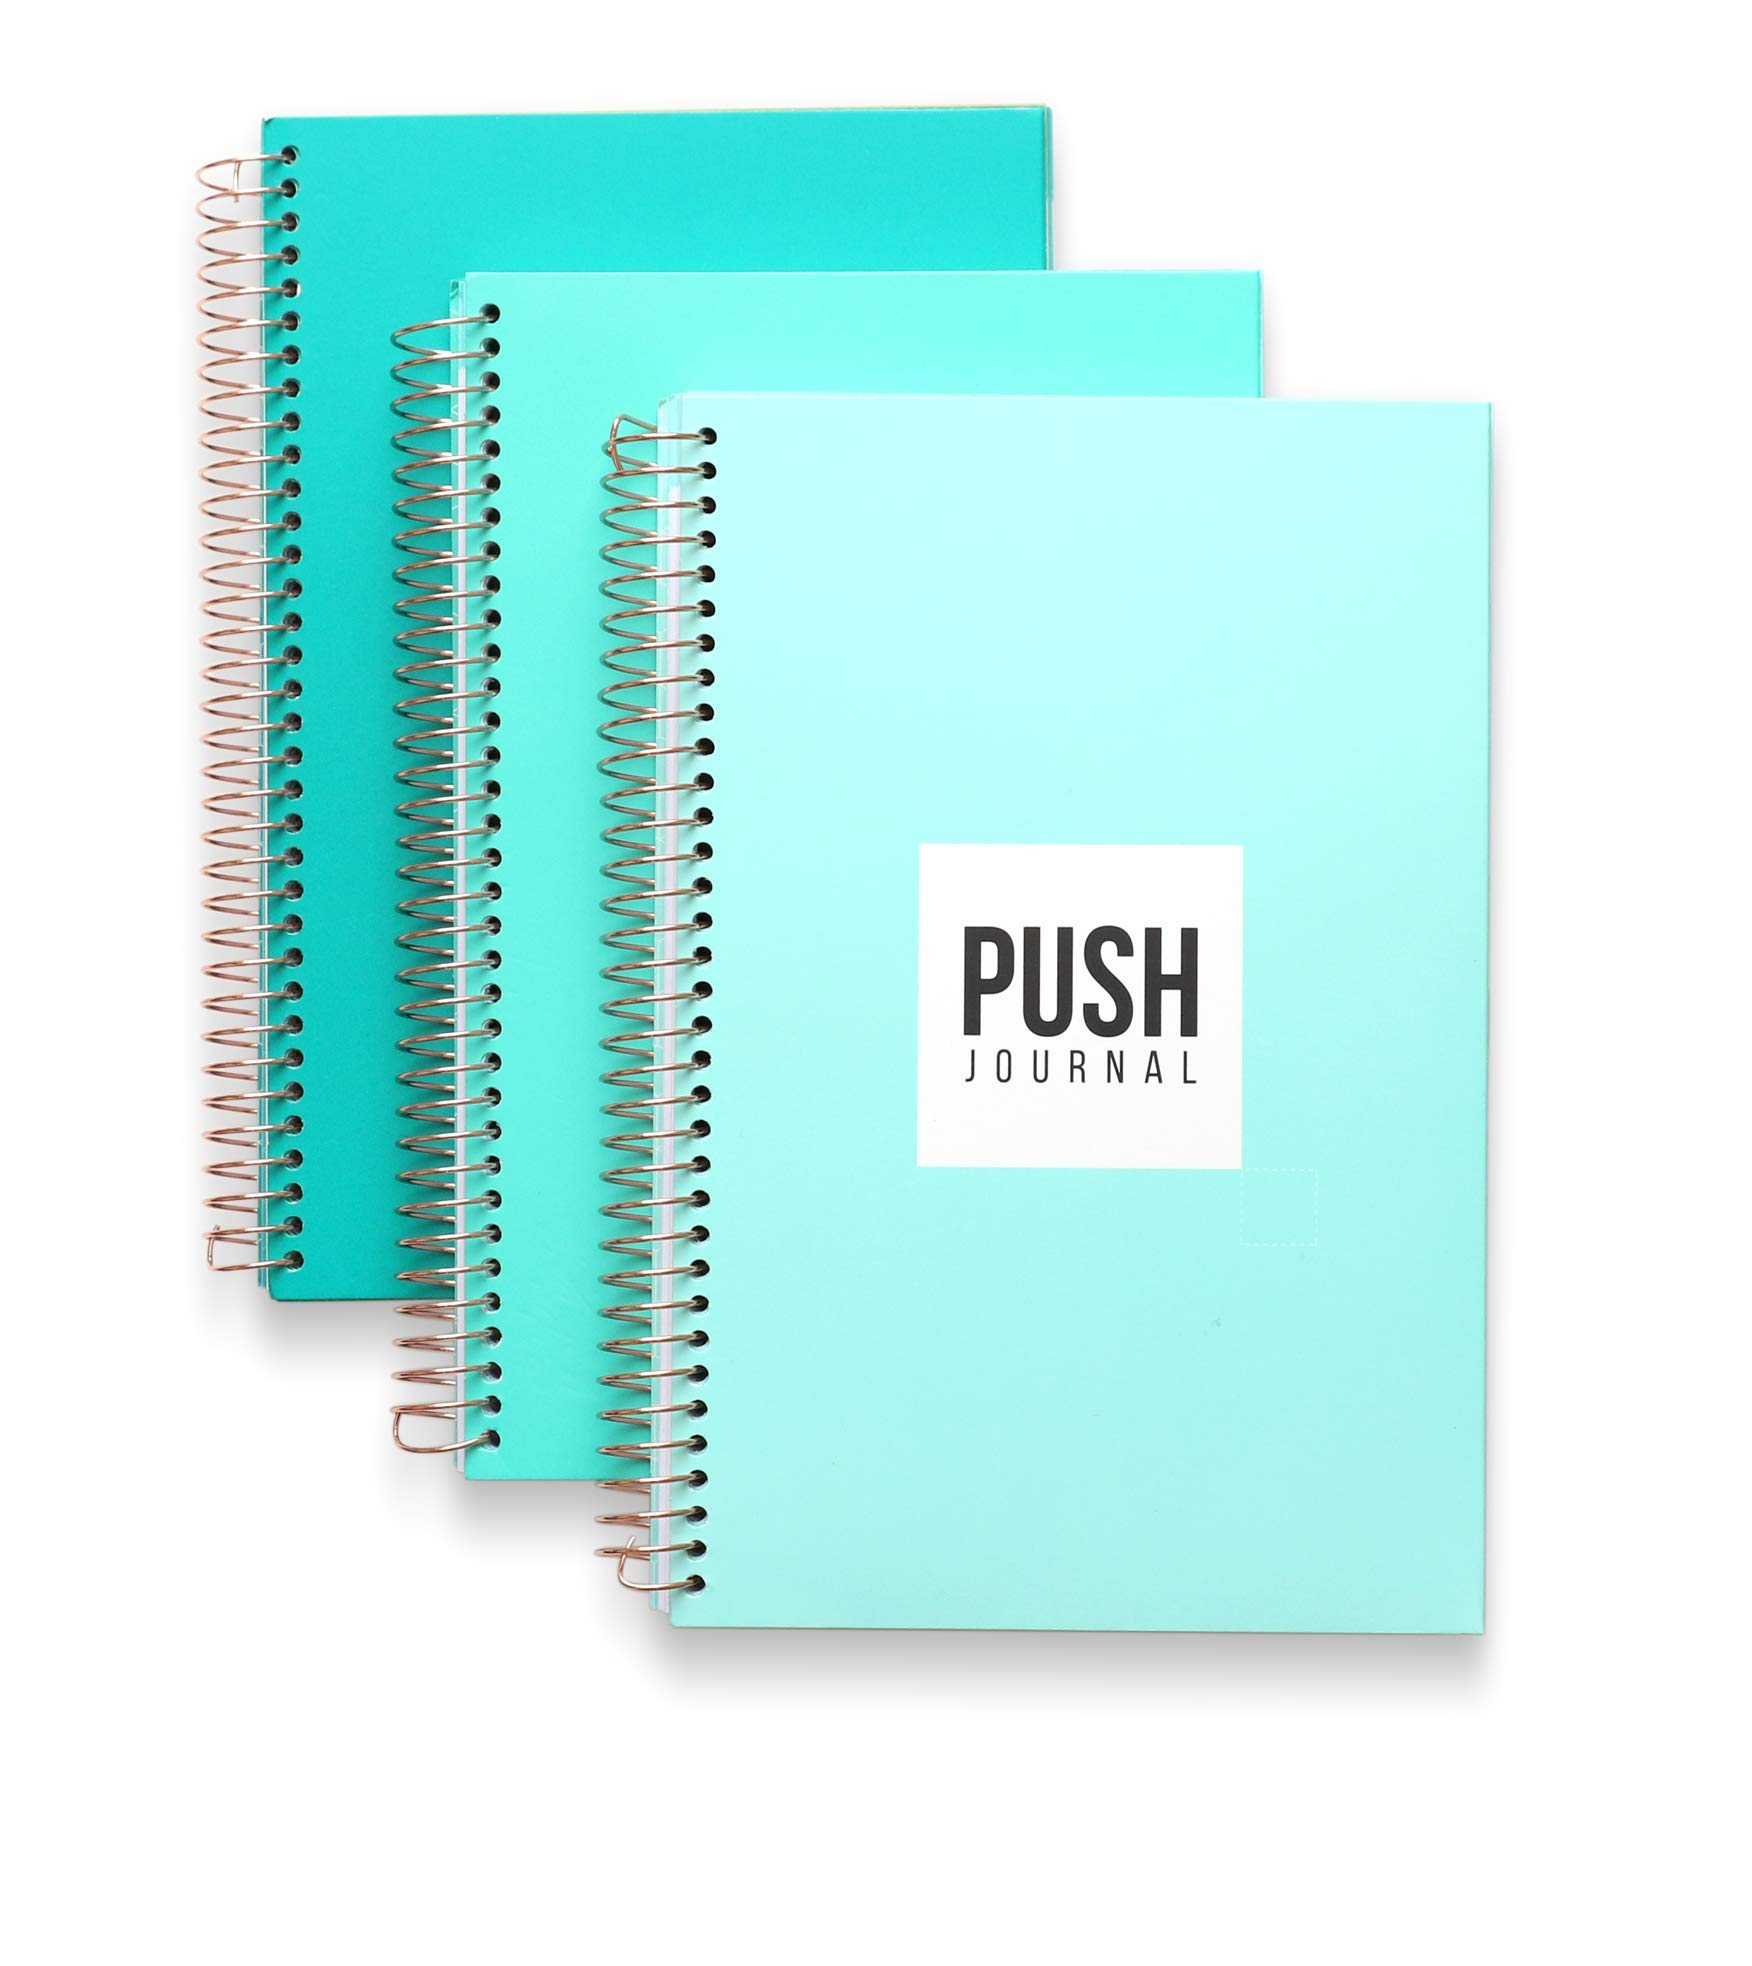 A 90-day, Undated, All-In-One Life Planner/Goal Setter/Notebook/Organizer/Scheduler/Journal Book, 3 Colors/Pack, Each Journal: 160 Pages-Quality Paper, 0.9 Lbs, 7x9 - Fits Into Your Bag